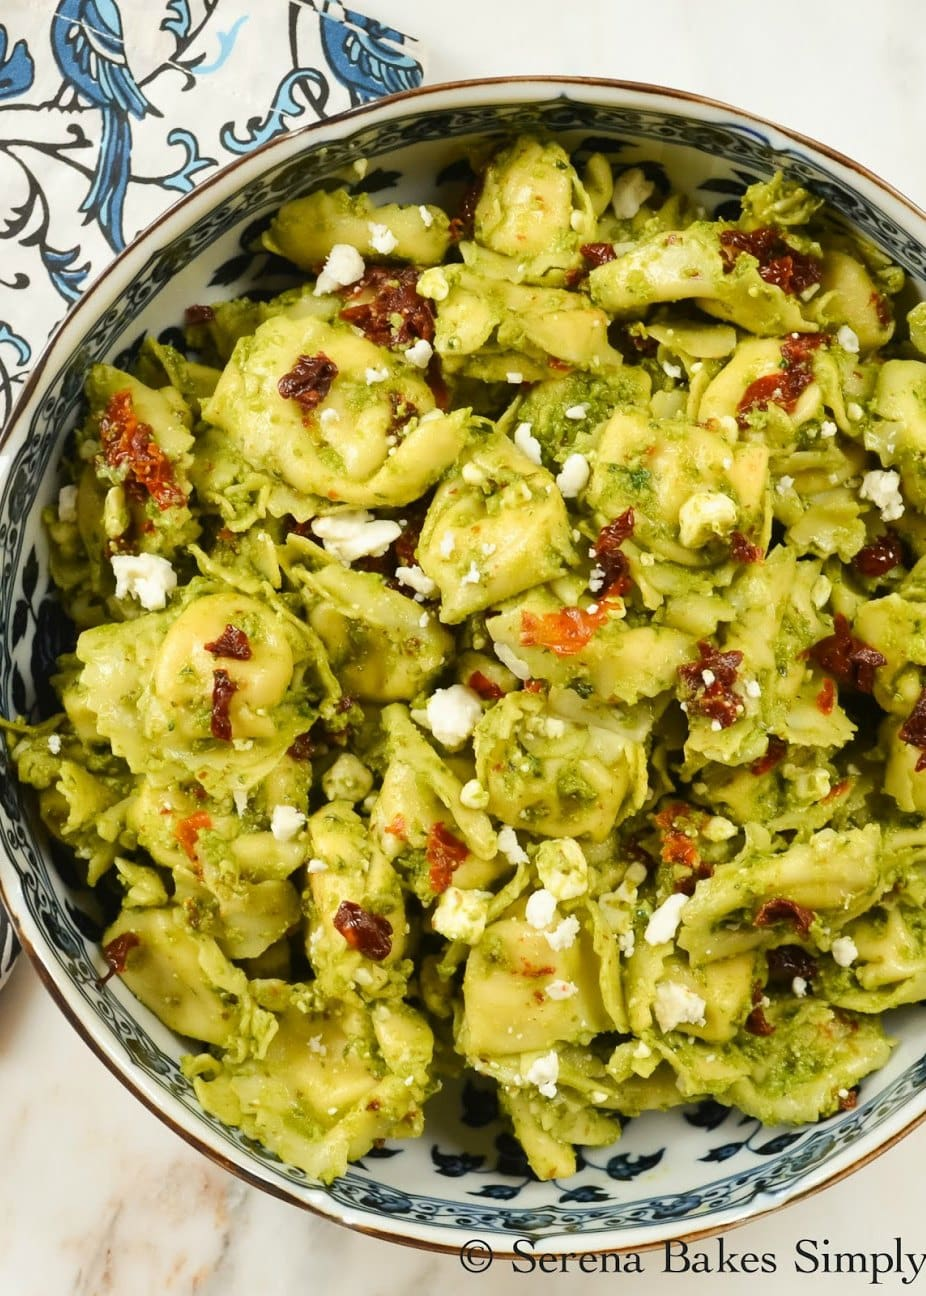 Tortellini Pesto Pasta Salad recipe with Feta is super easy to make! Delicious Pasta Salad served warm or cold and great for lunch, dinner or side dish from Serena Bakes Simply From Scratch.